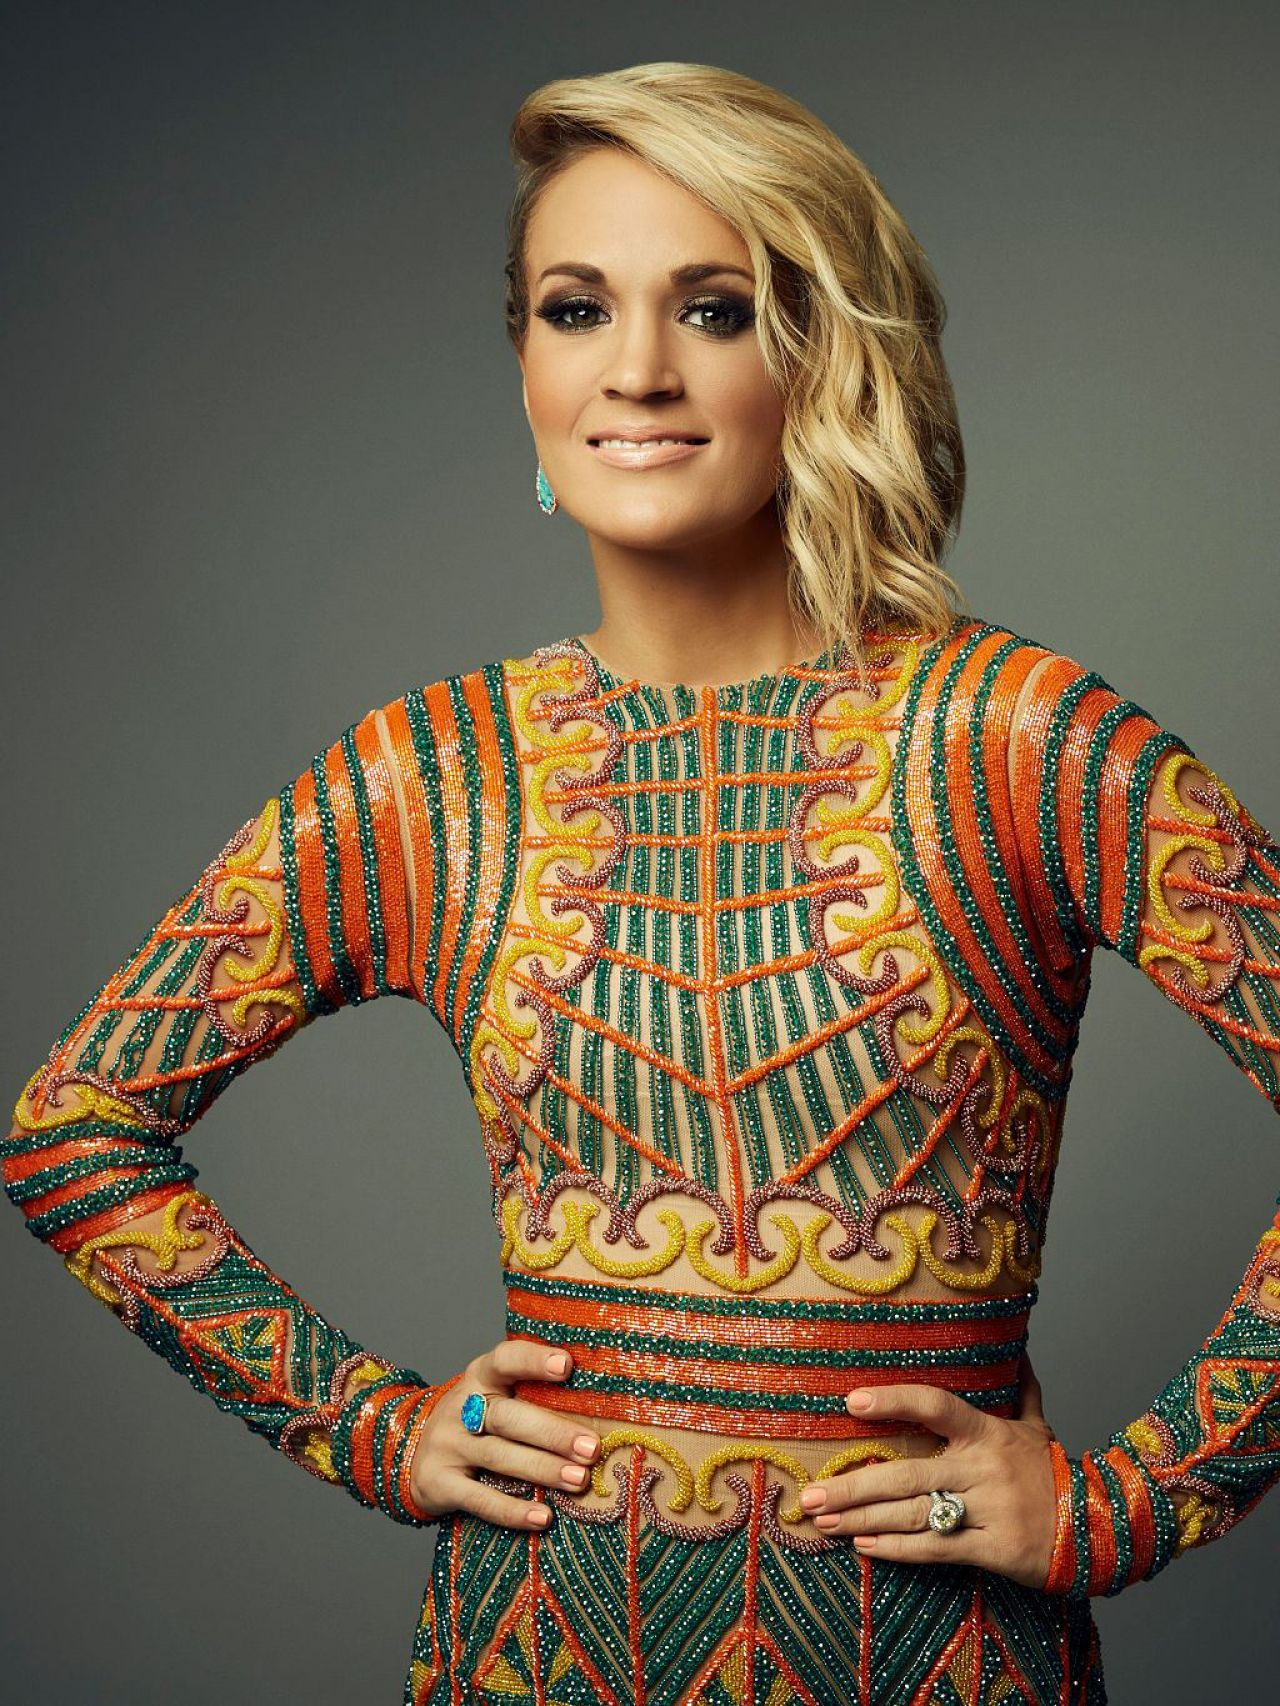 Carrie Underwood Photoshoot For 2016 American Country